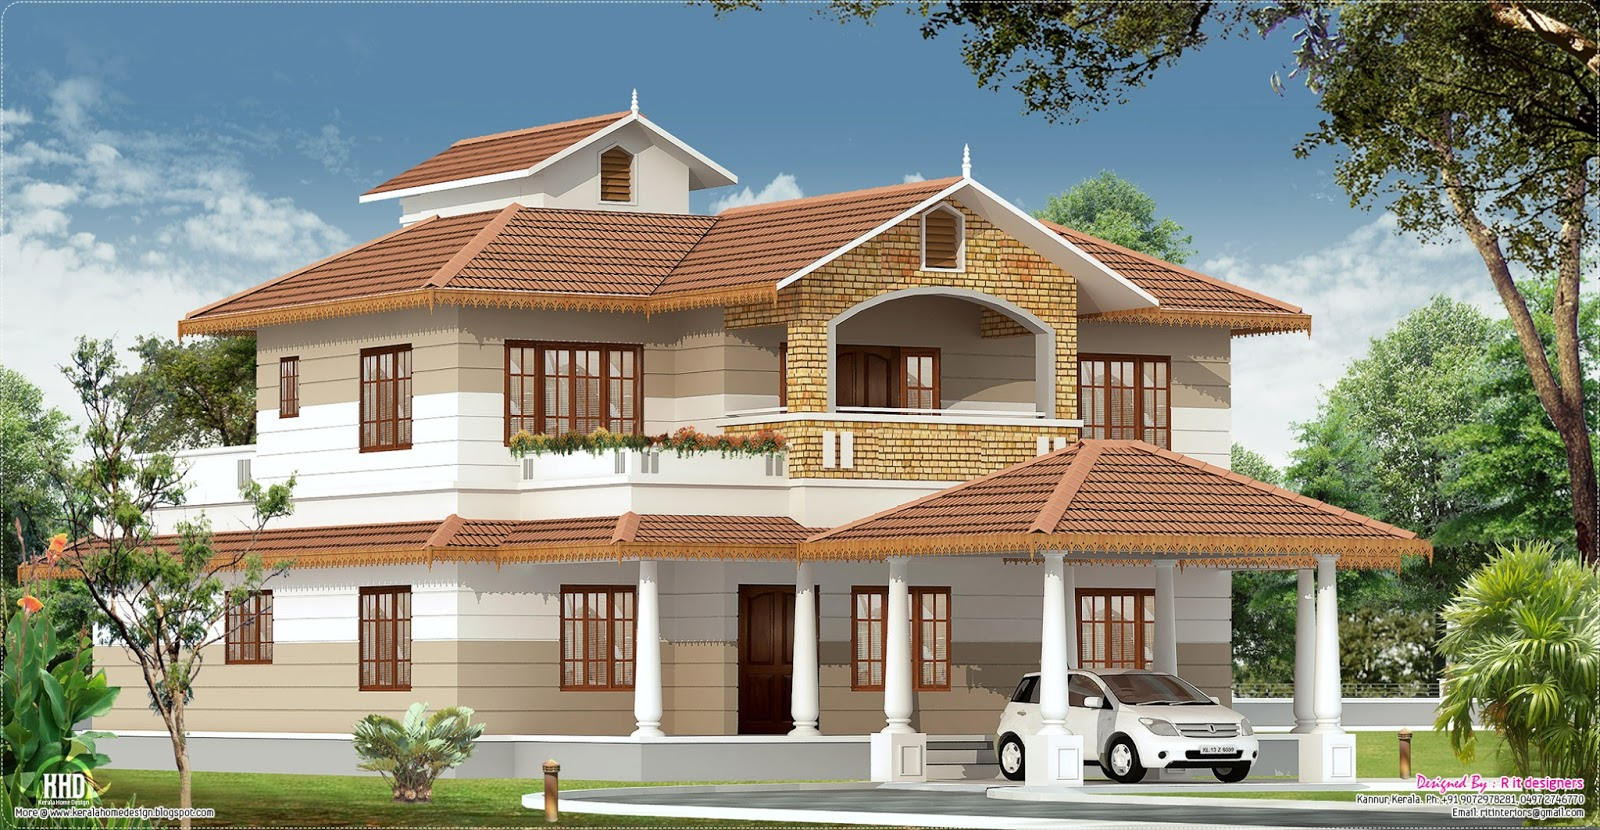 kerala style house exterior designs 2700 kerala home with interior designs house